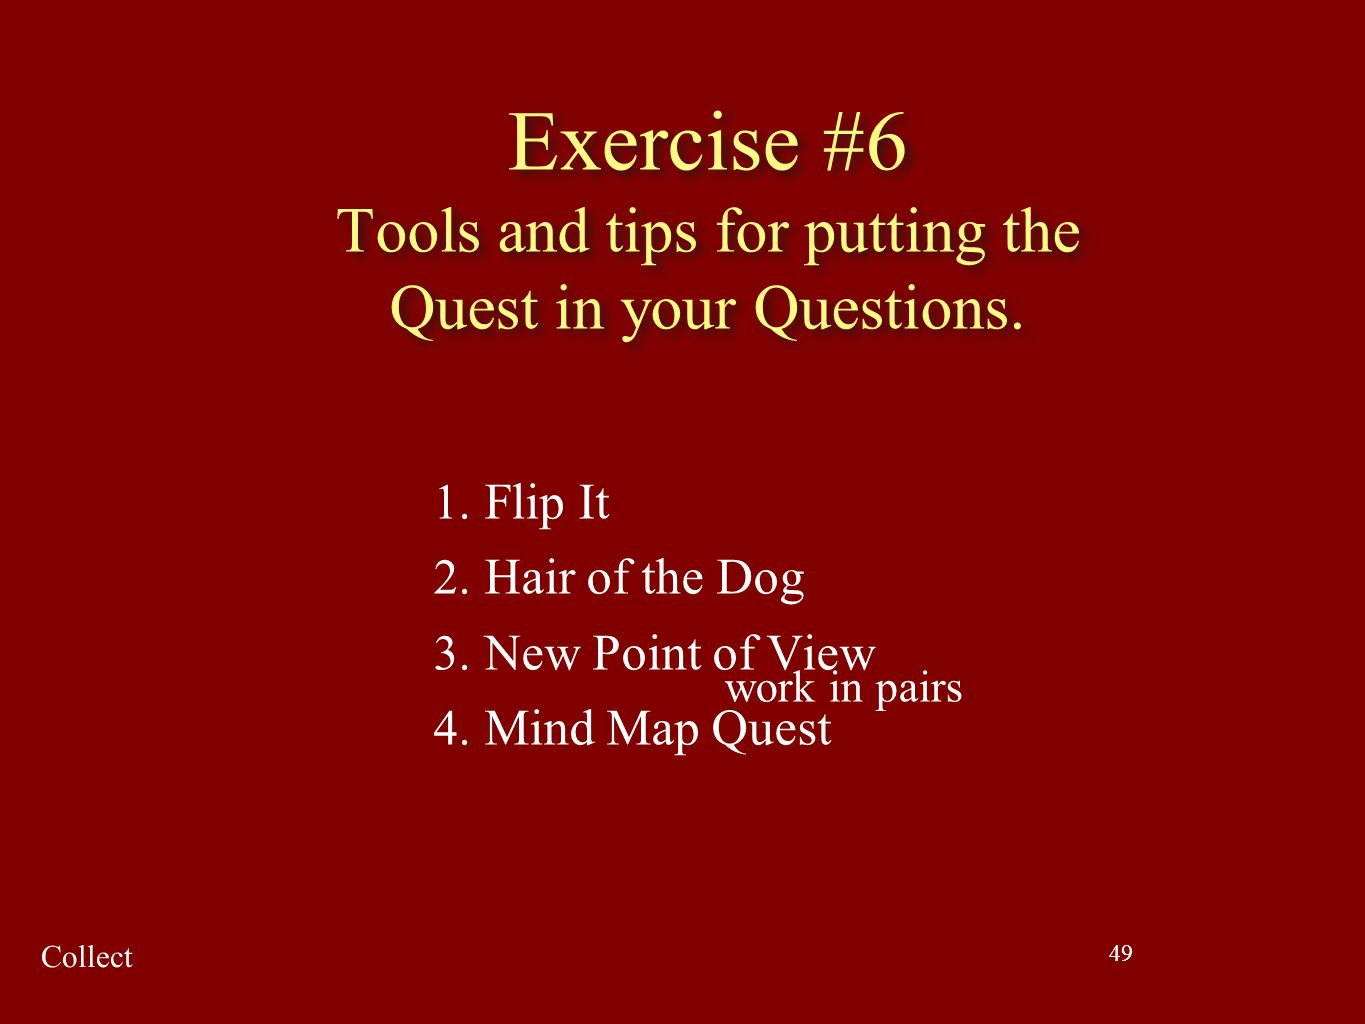 Exercise #6 Tools and tips for putting the Quest in your Questions.